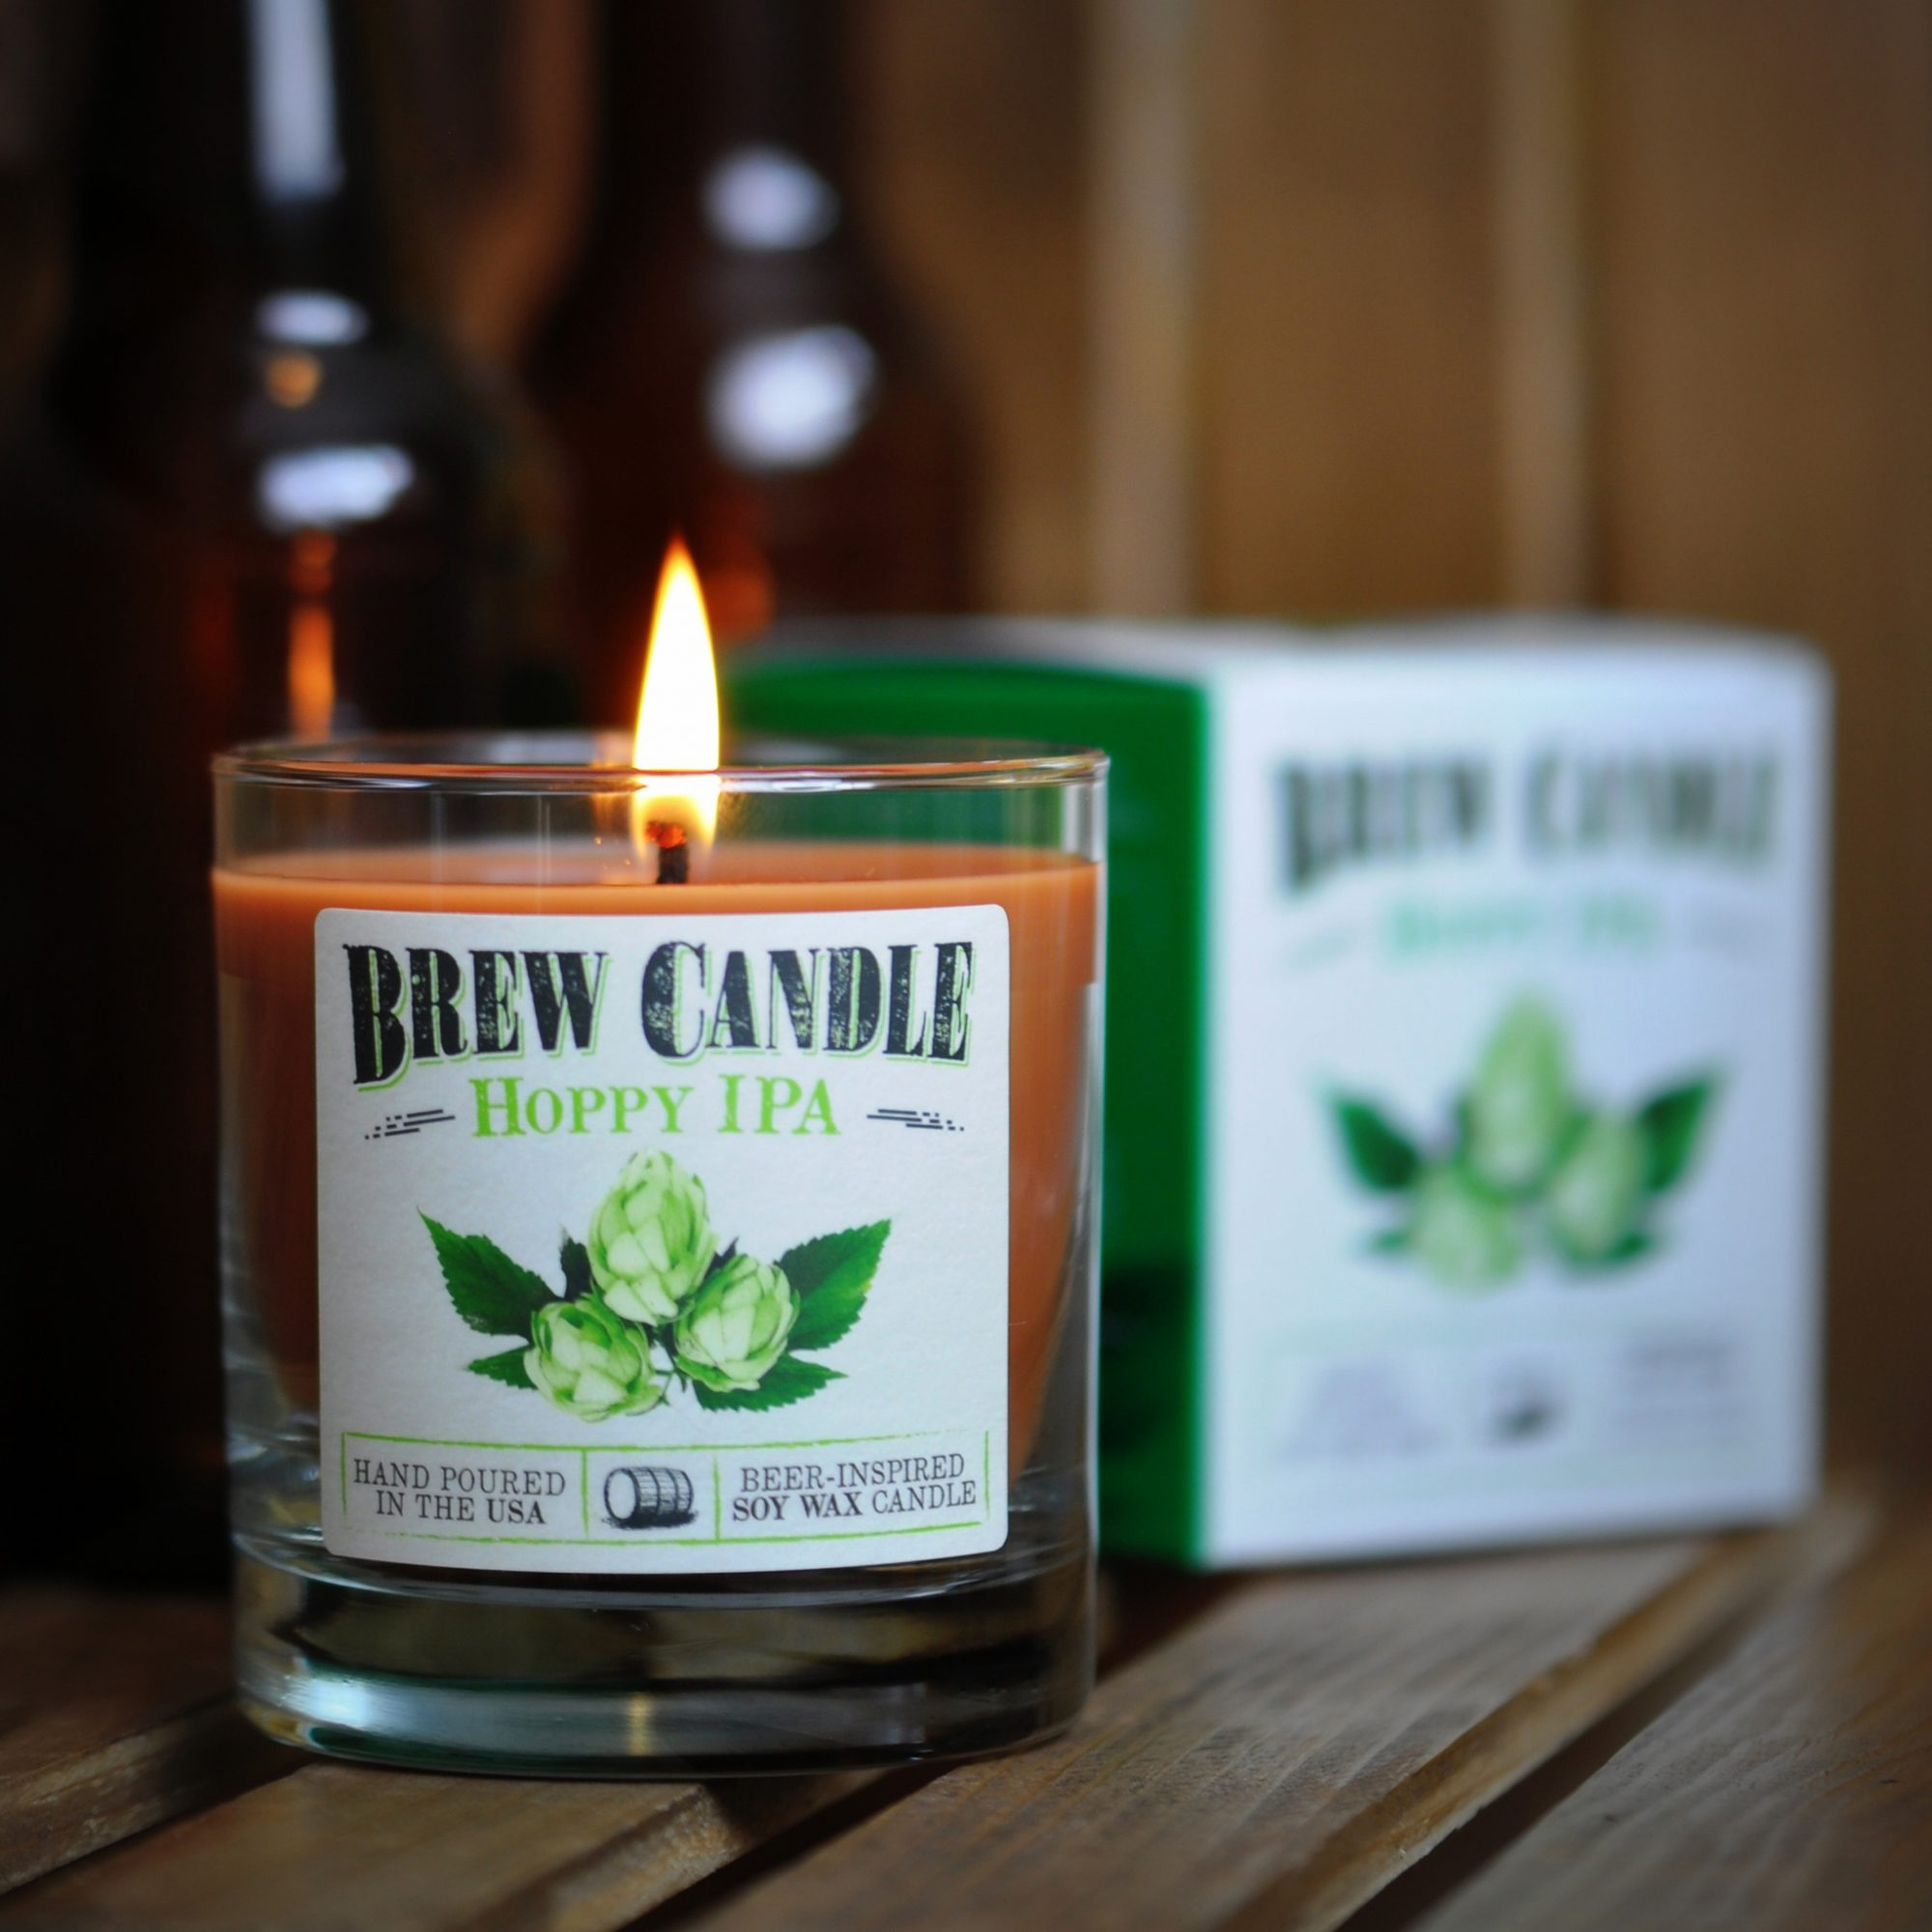 FWX HOPPY IPA BREW CANDLE